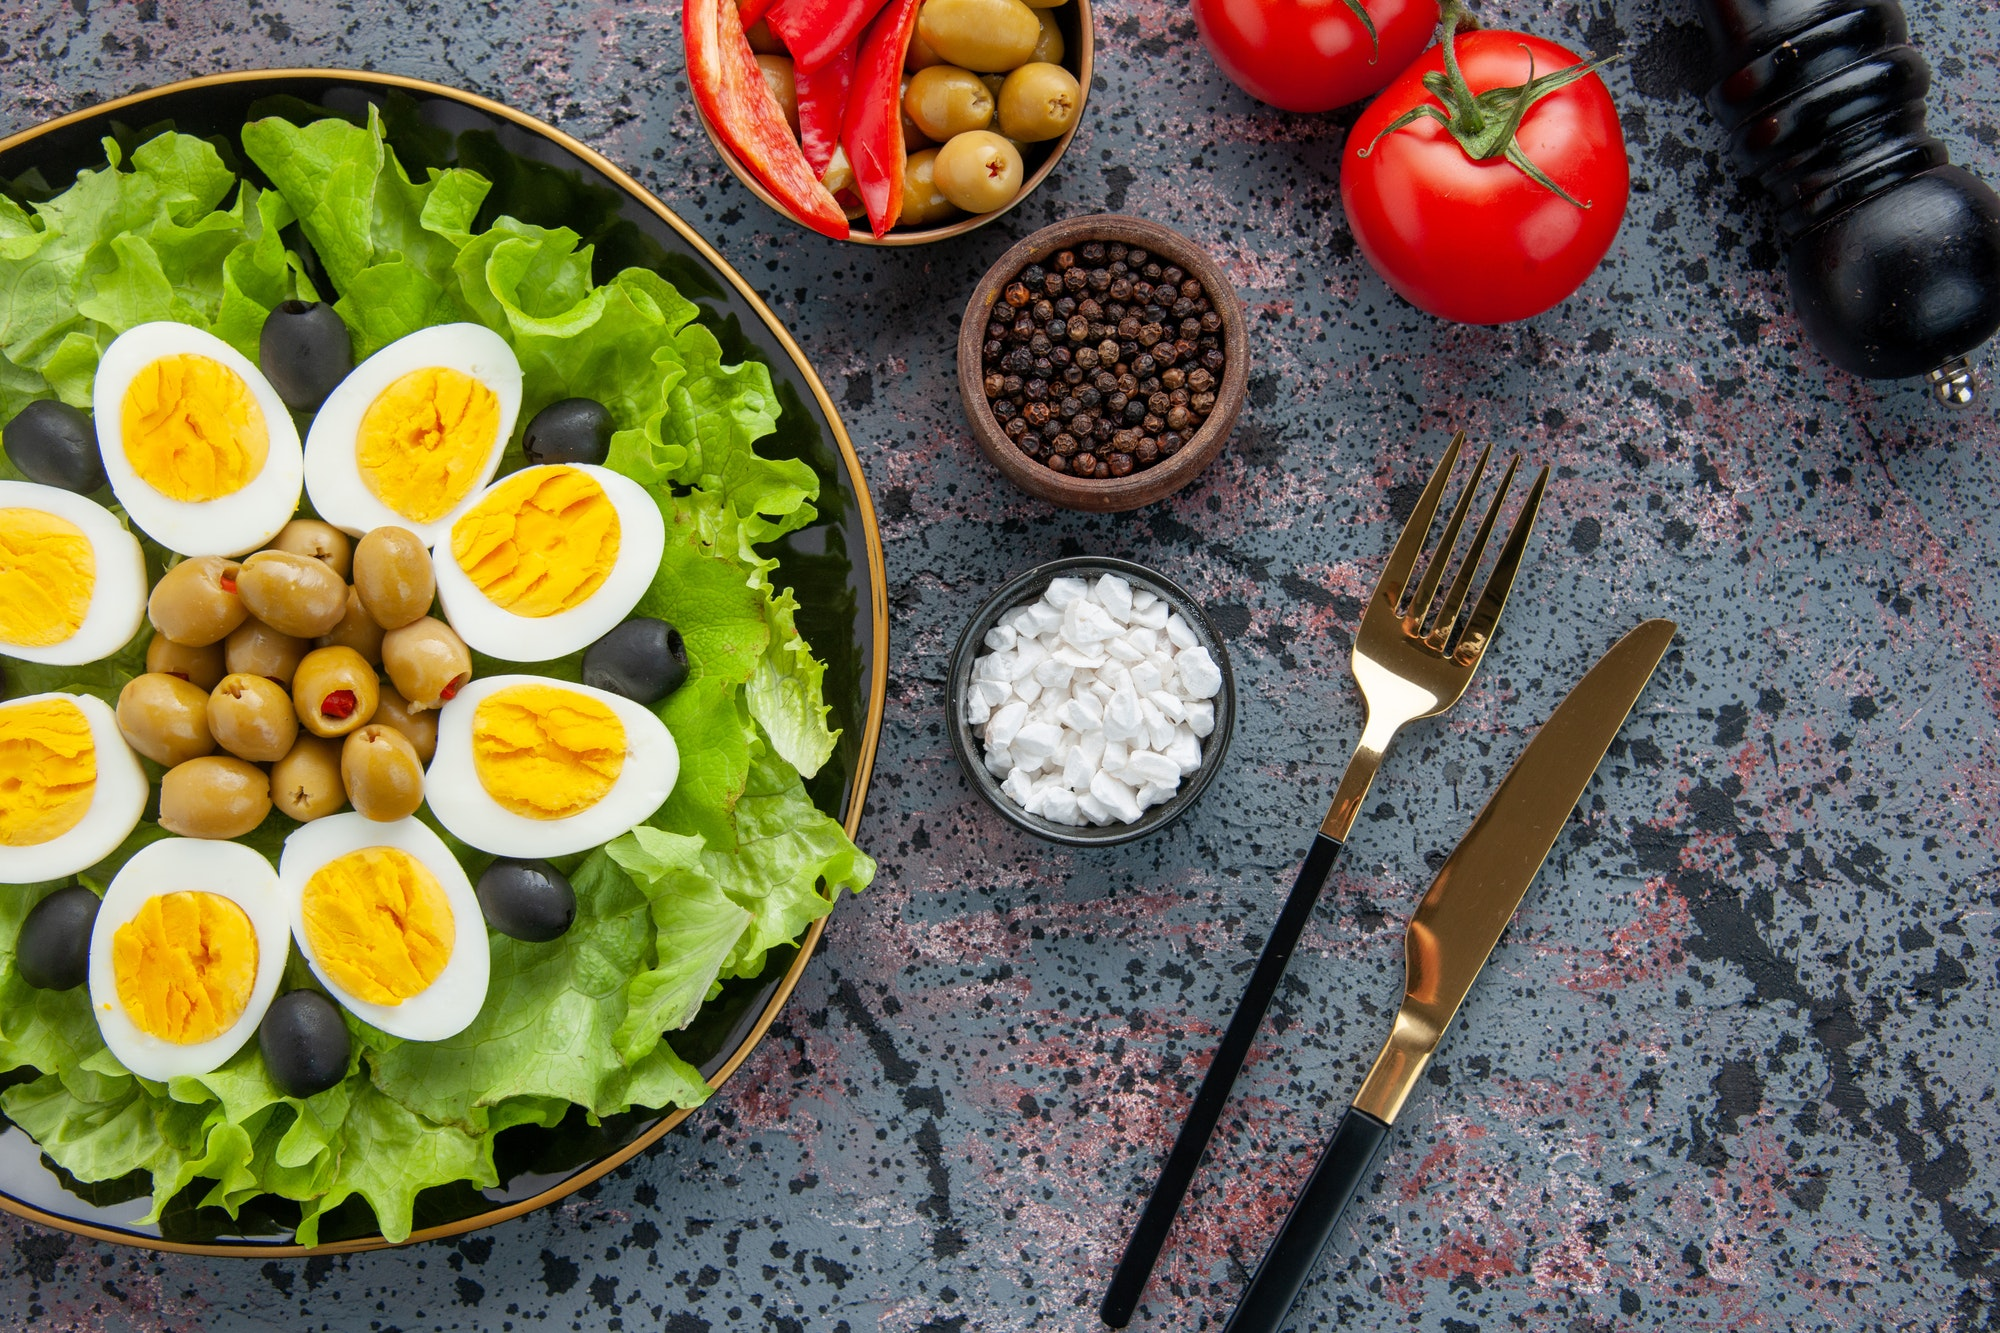 High cholesterol: Eggs do not raise cholesterol levels as much as saturated fats do